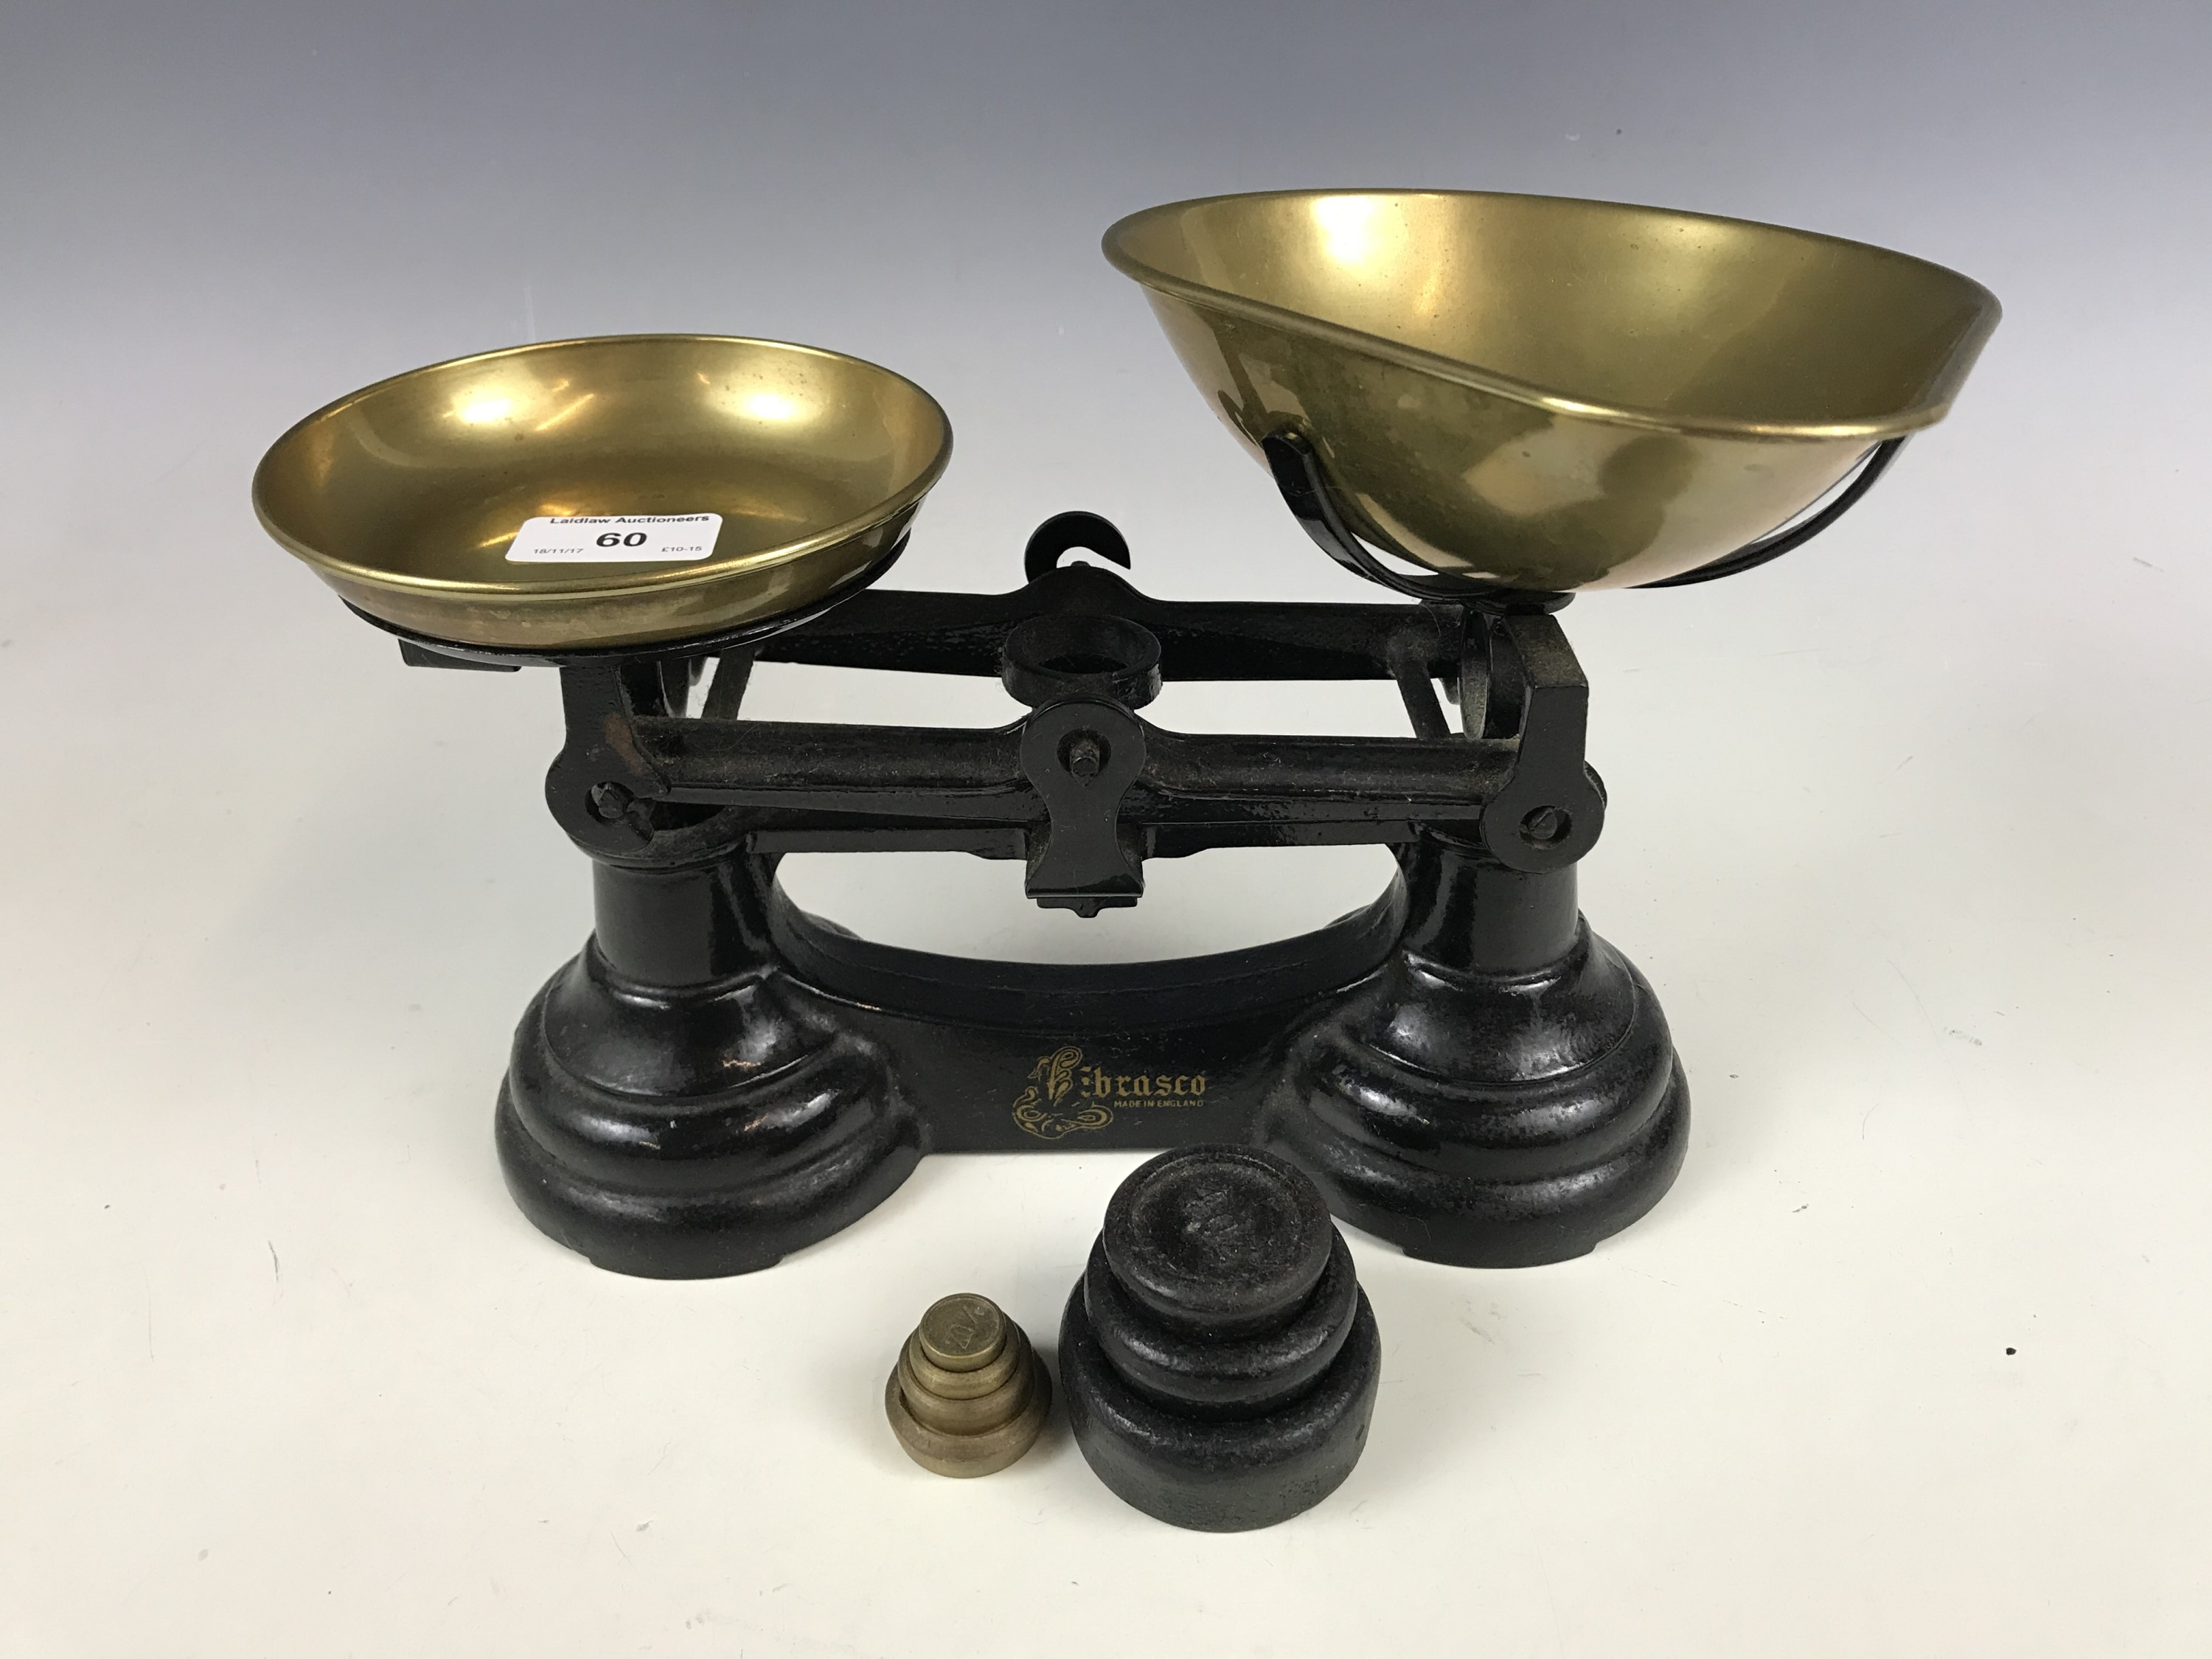 Lot 59 - A set of Brasco kitchen scales and weights